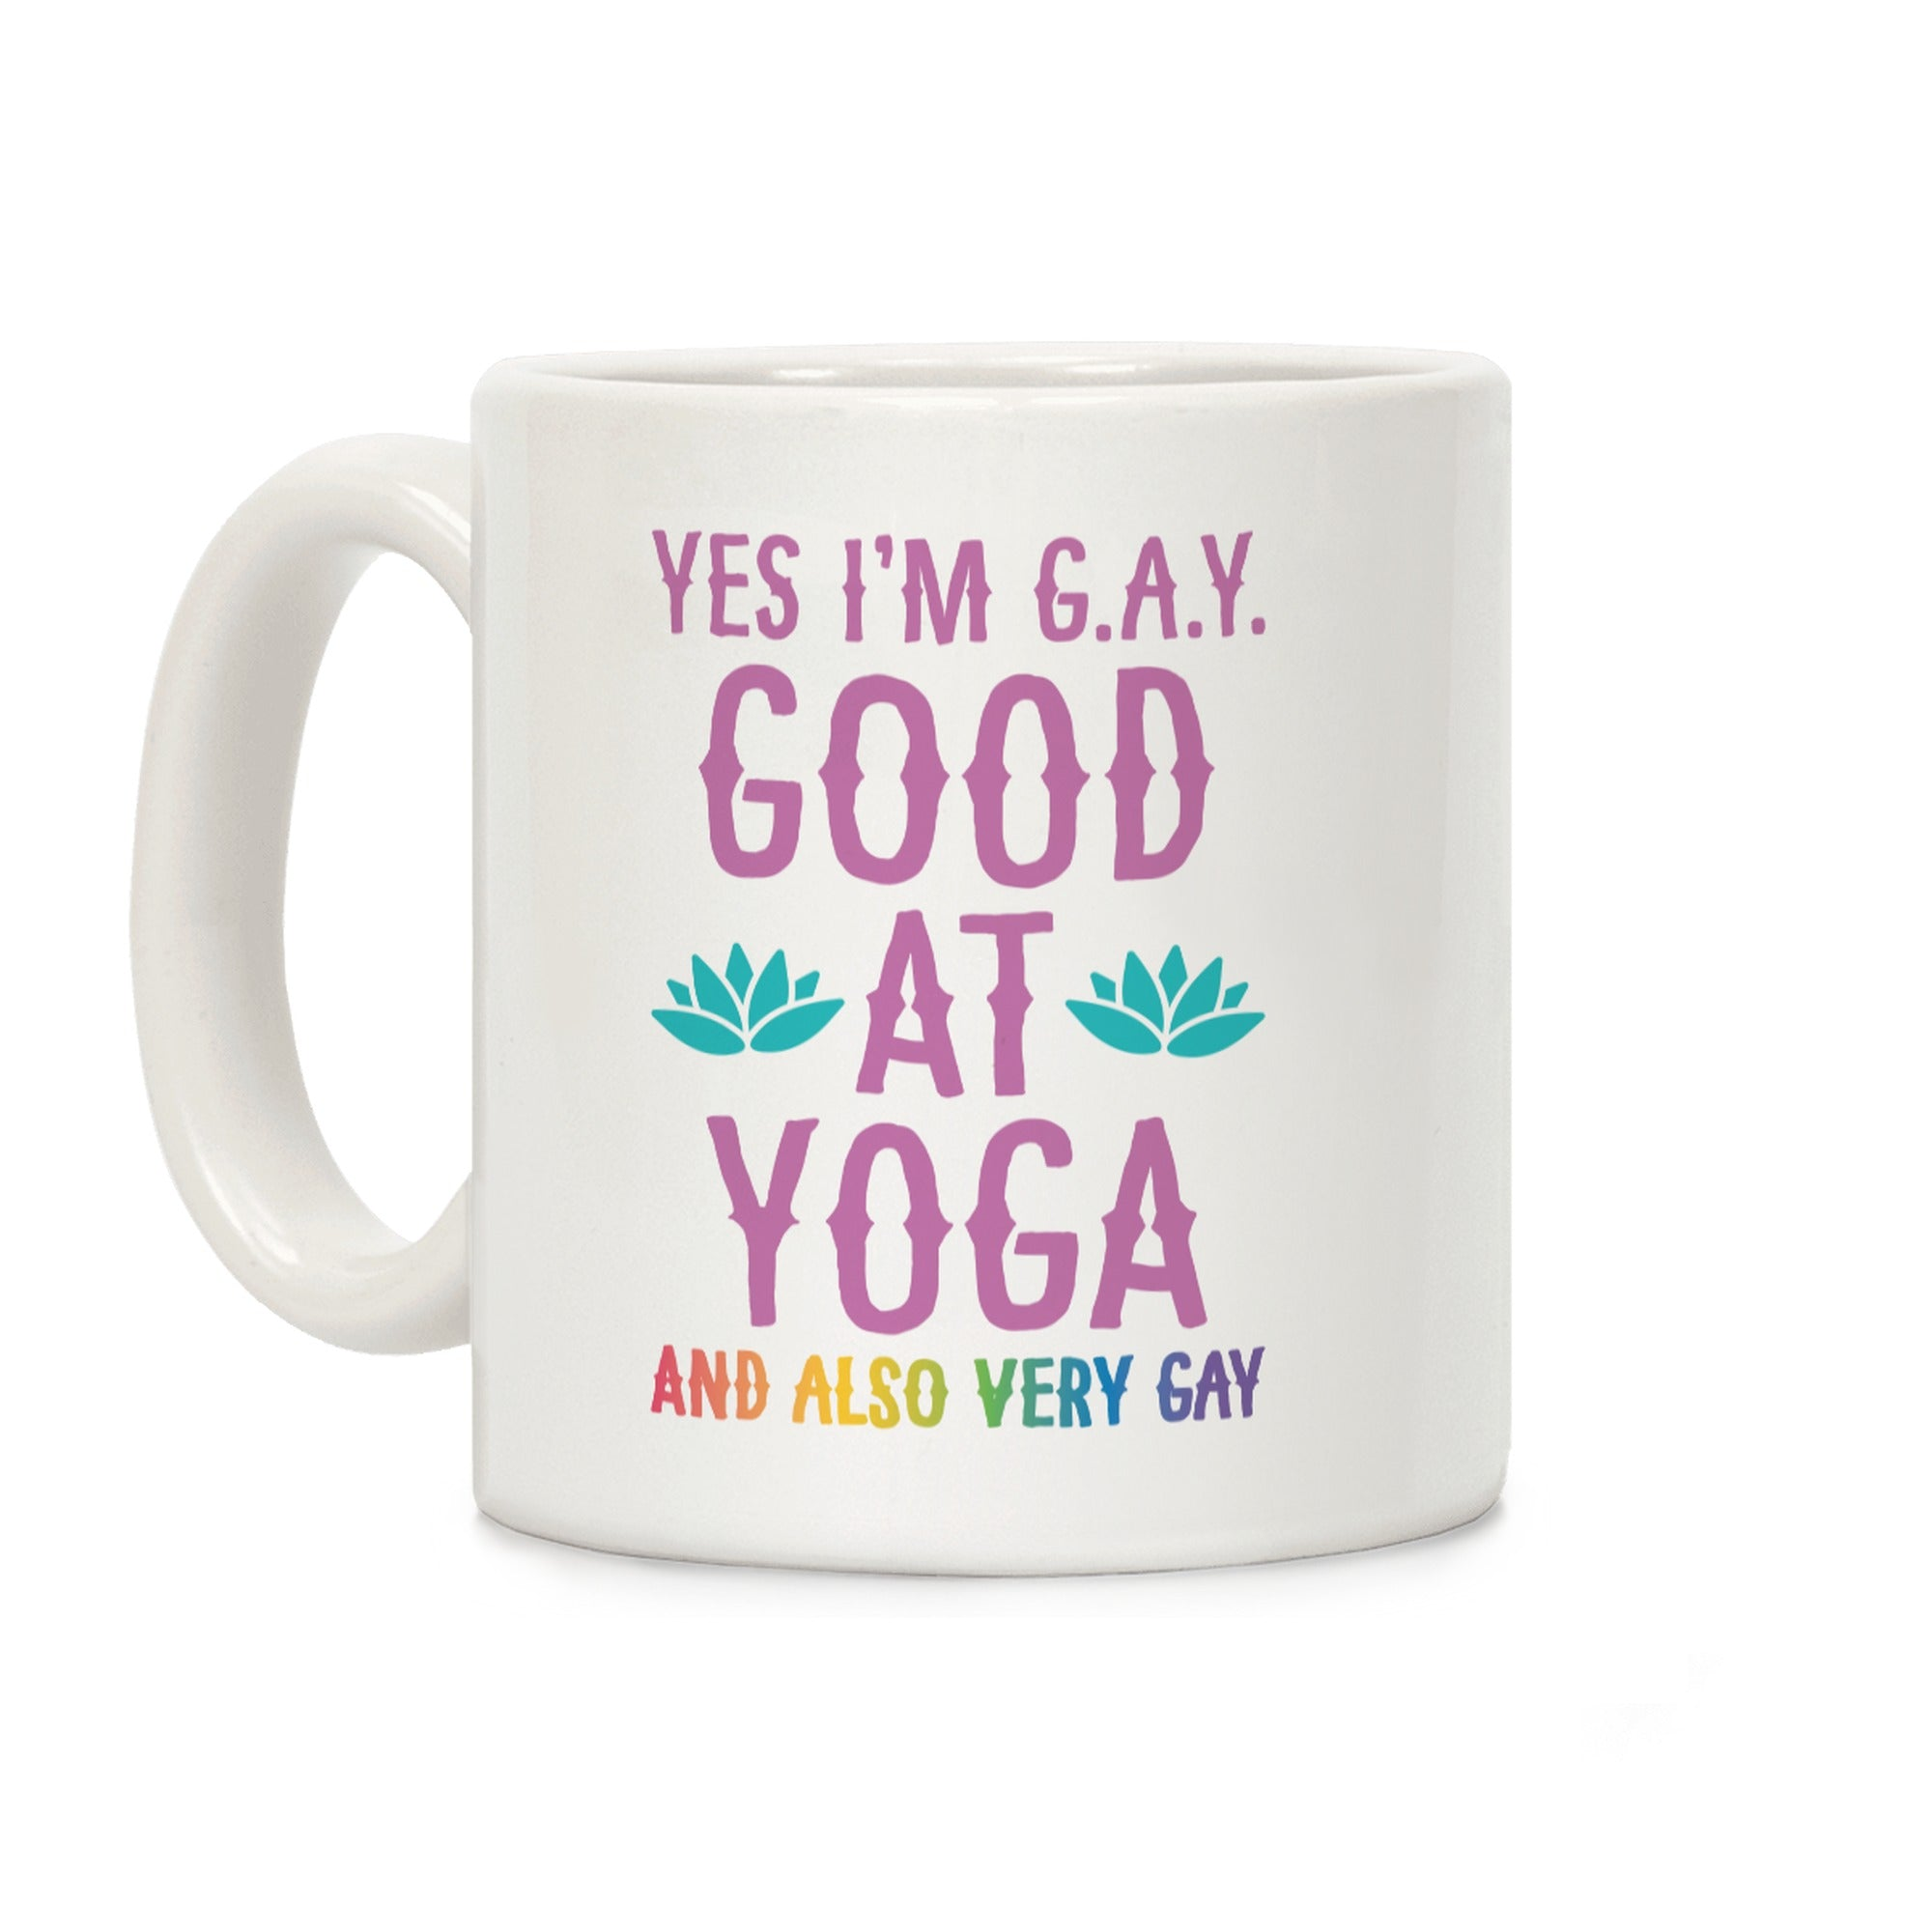 Yes I'm G.A.Y. (Good At Yoga) And Also Very Gay Ceramic Coffee Mug